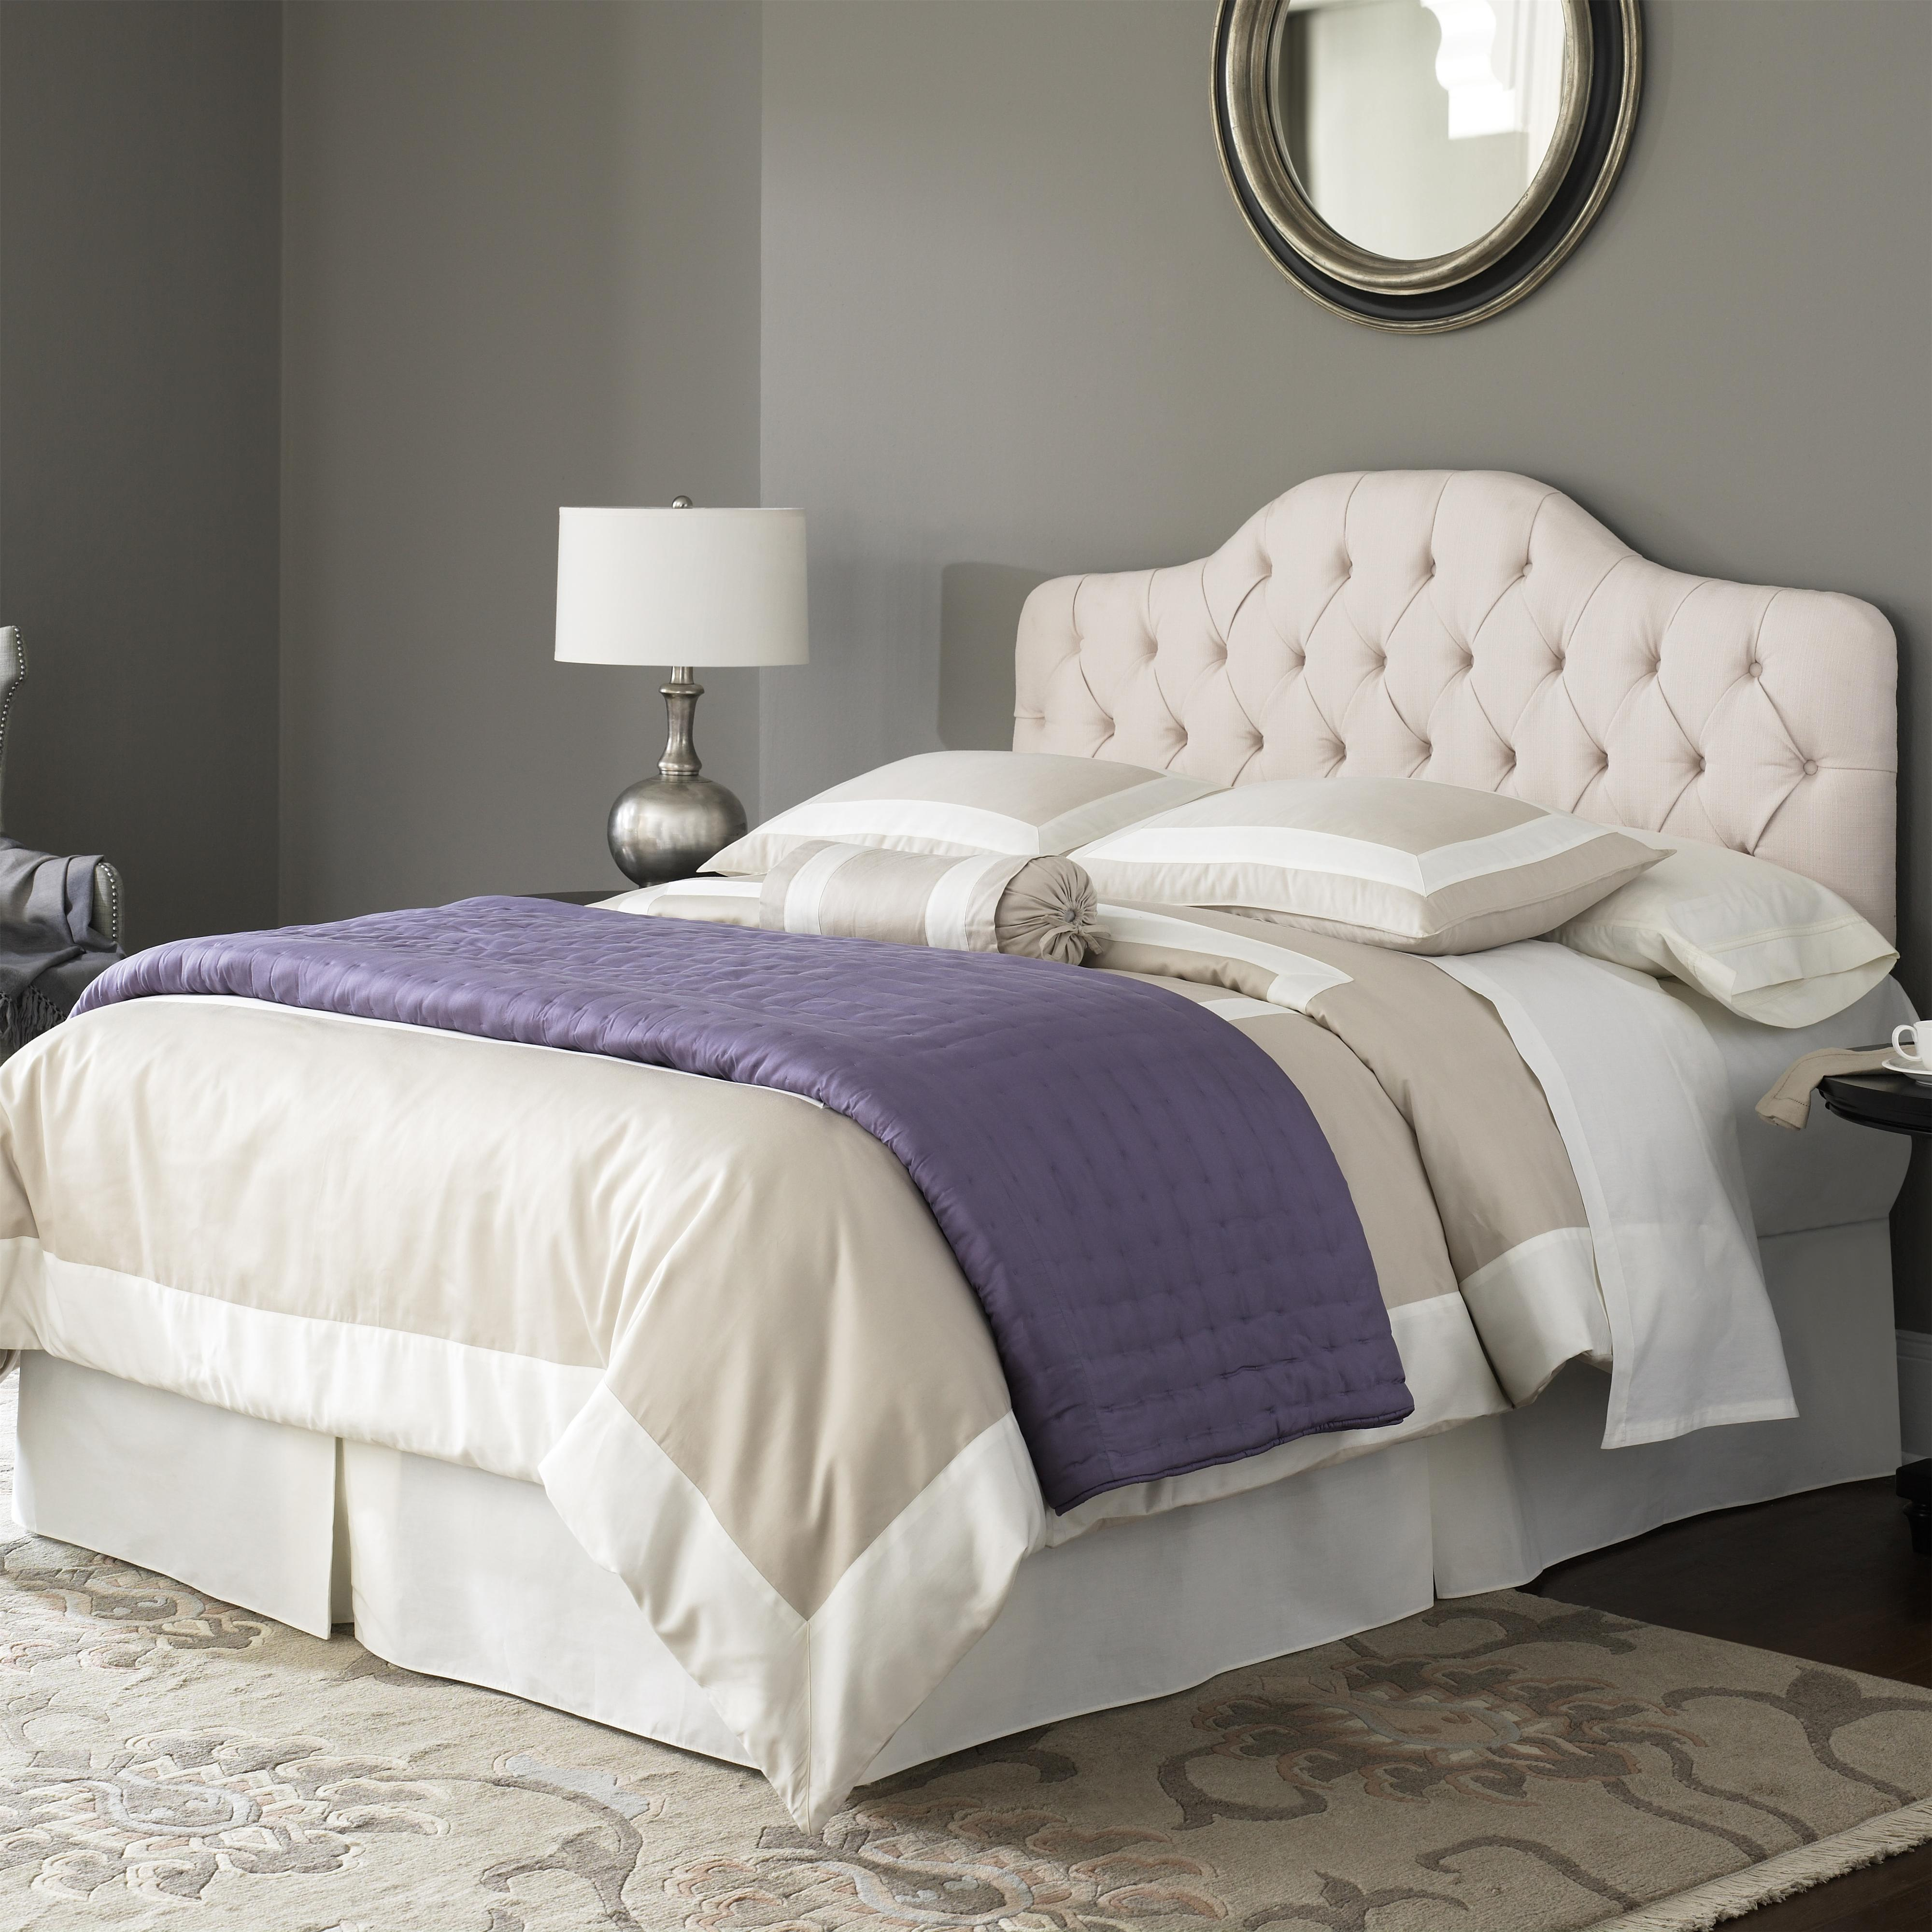 Tufted Headboards For King Beds Bing Images